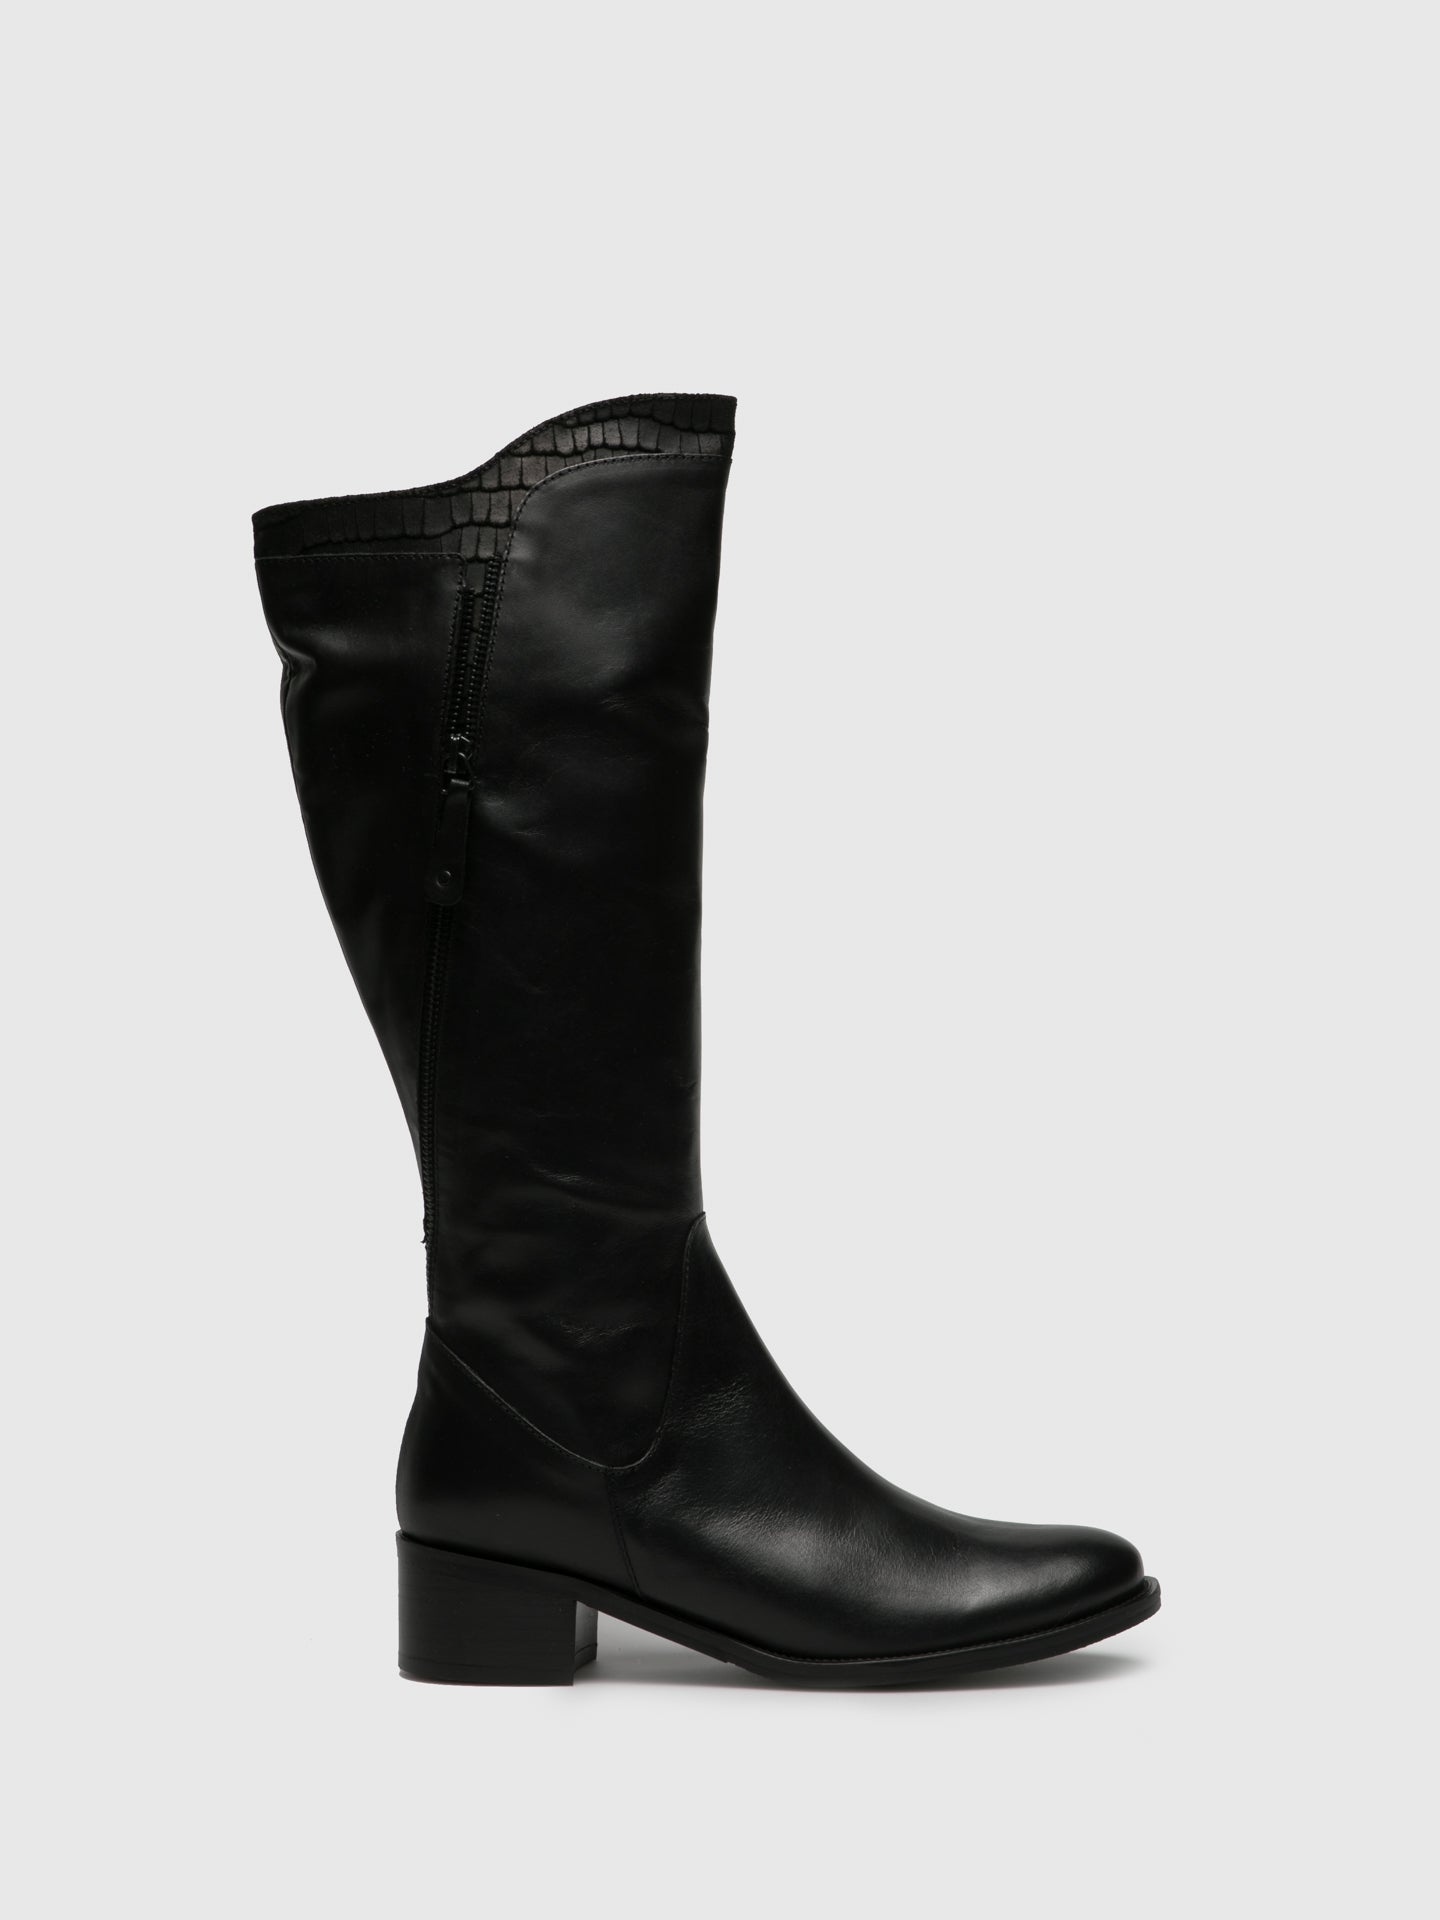 PintoDiBlu Black Leather Knee-High Boots